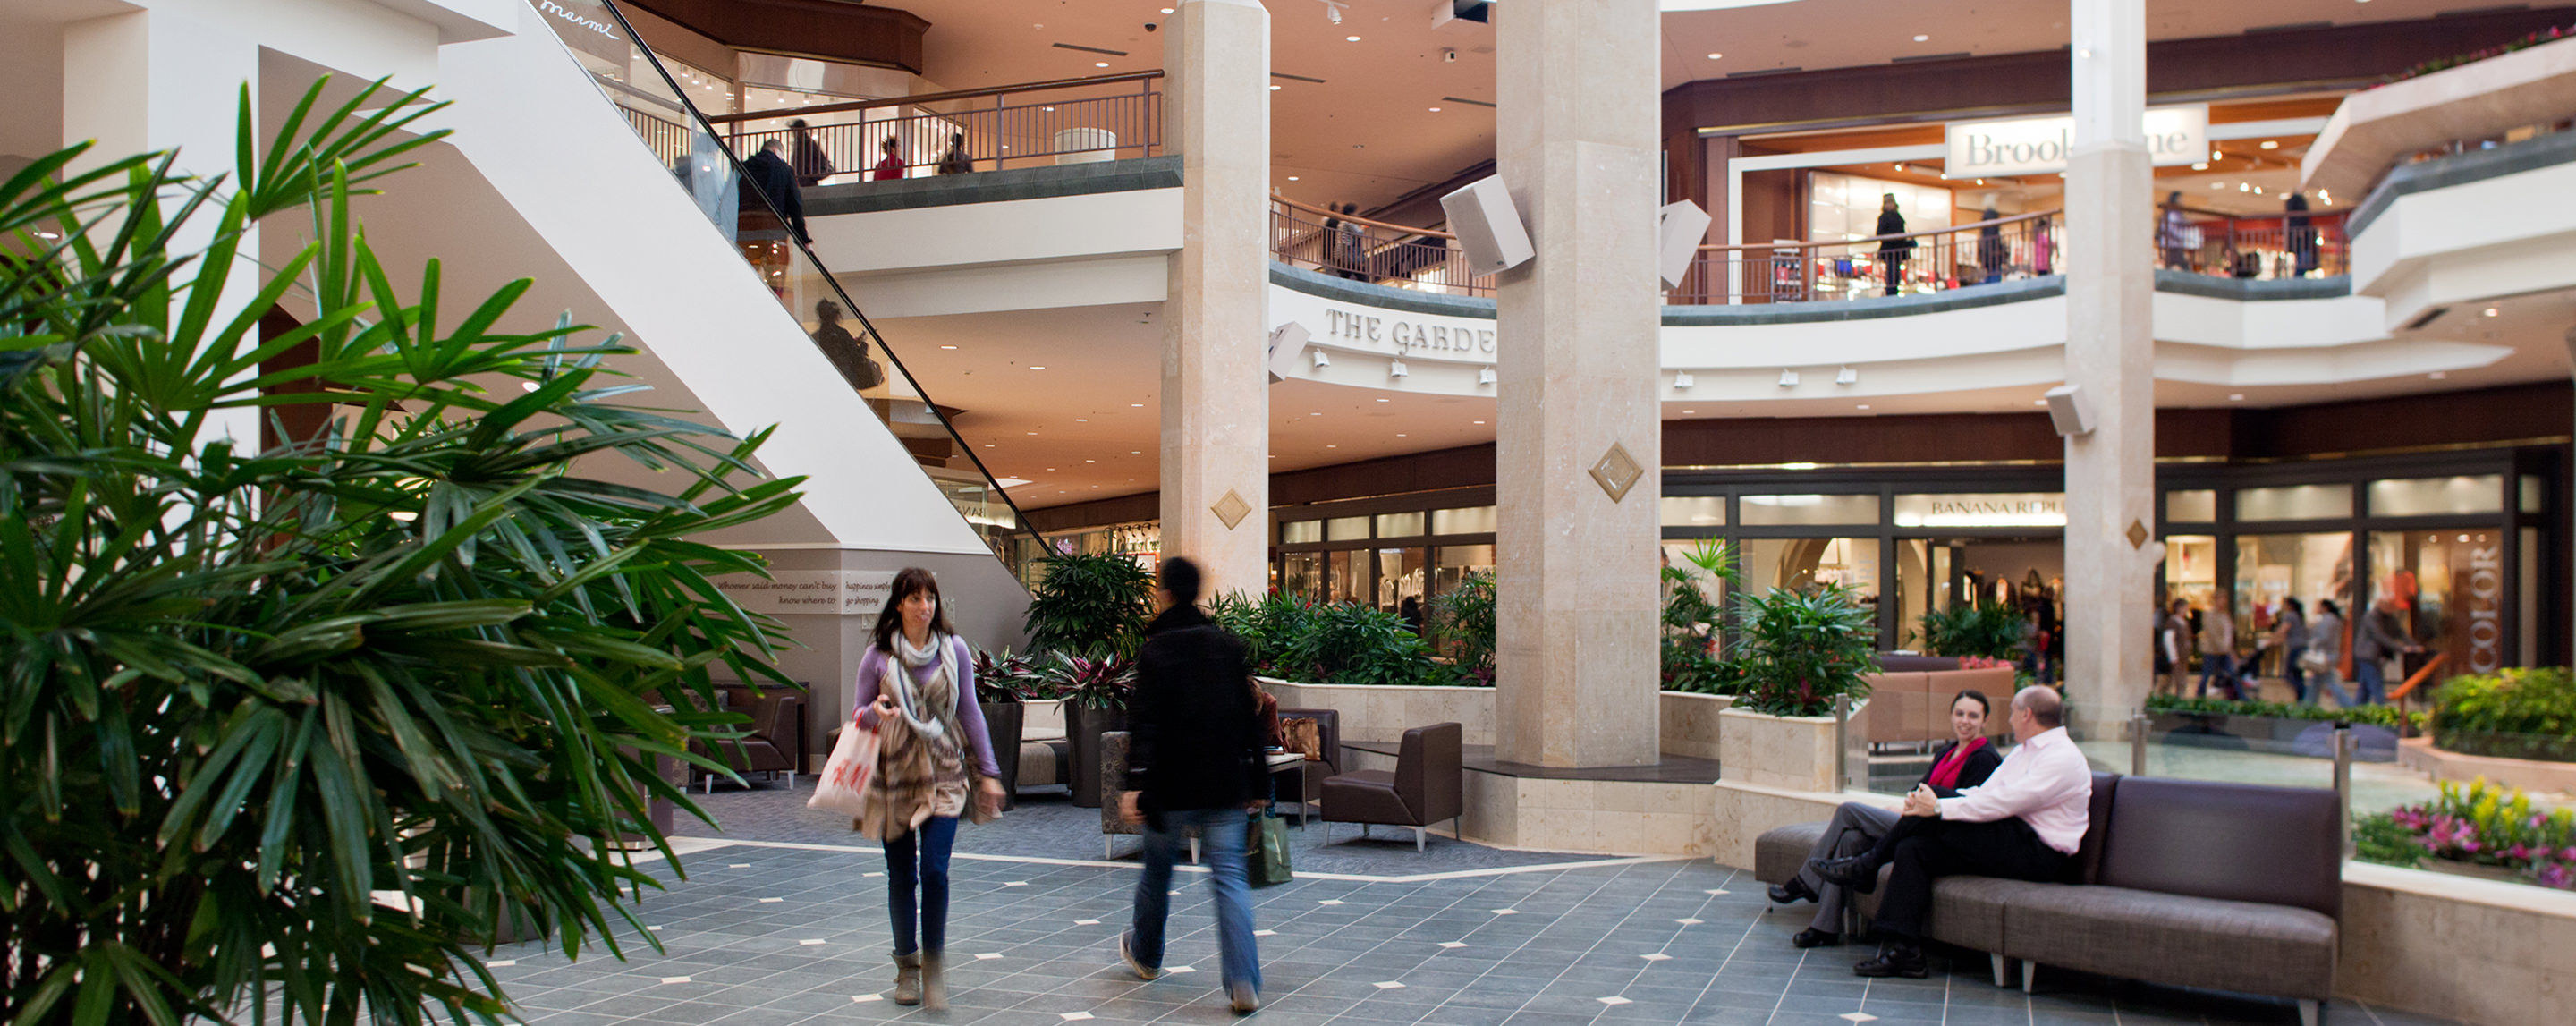 Saint Louis Galleria is located in St. Louis, Missouri and offers stores - Scroll down for Saint Louis Galleria shopping information: store list (directory), locations, mall hours, contact and address.3/5(7).